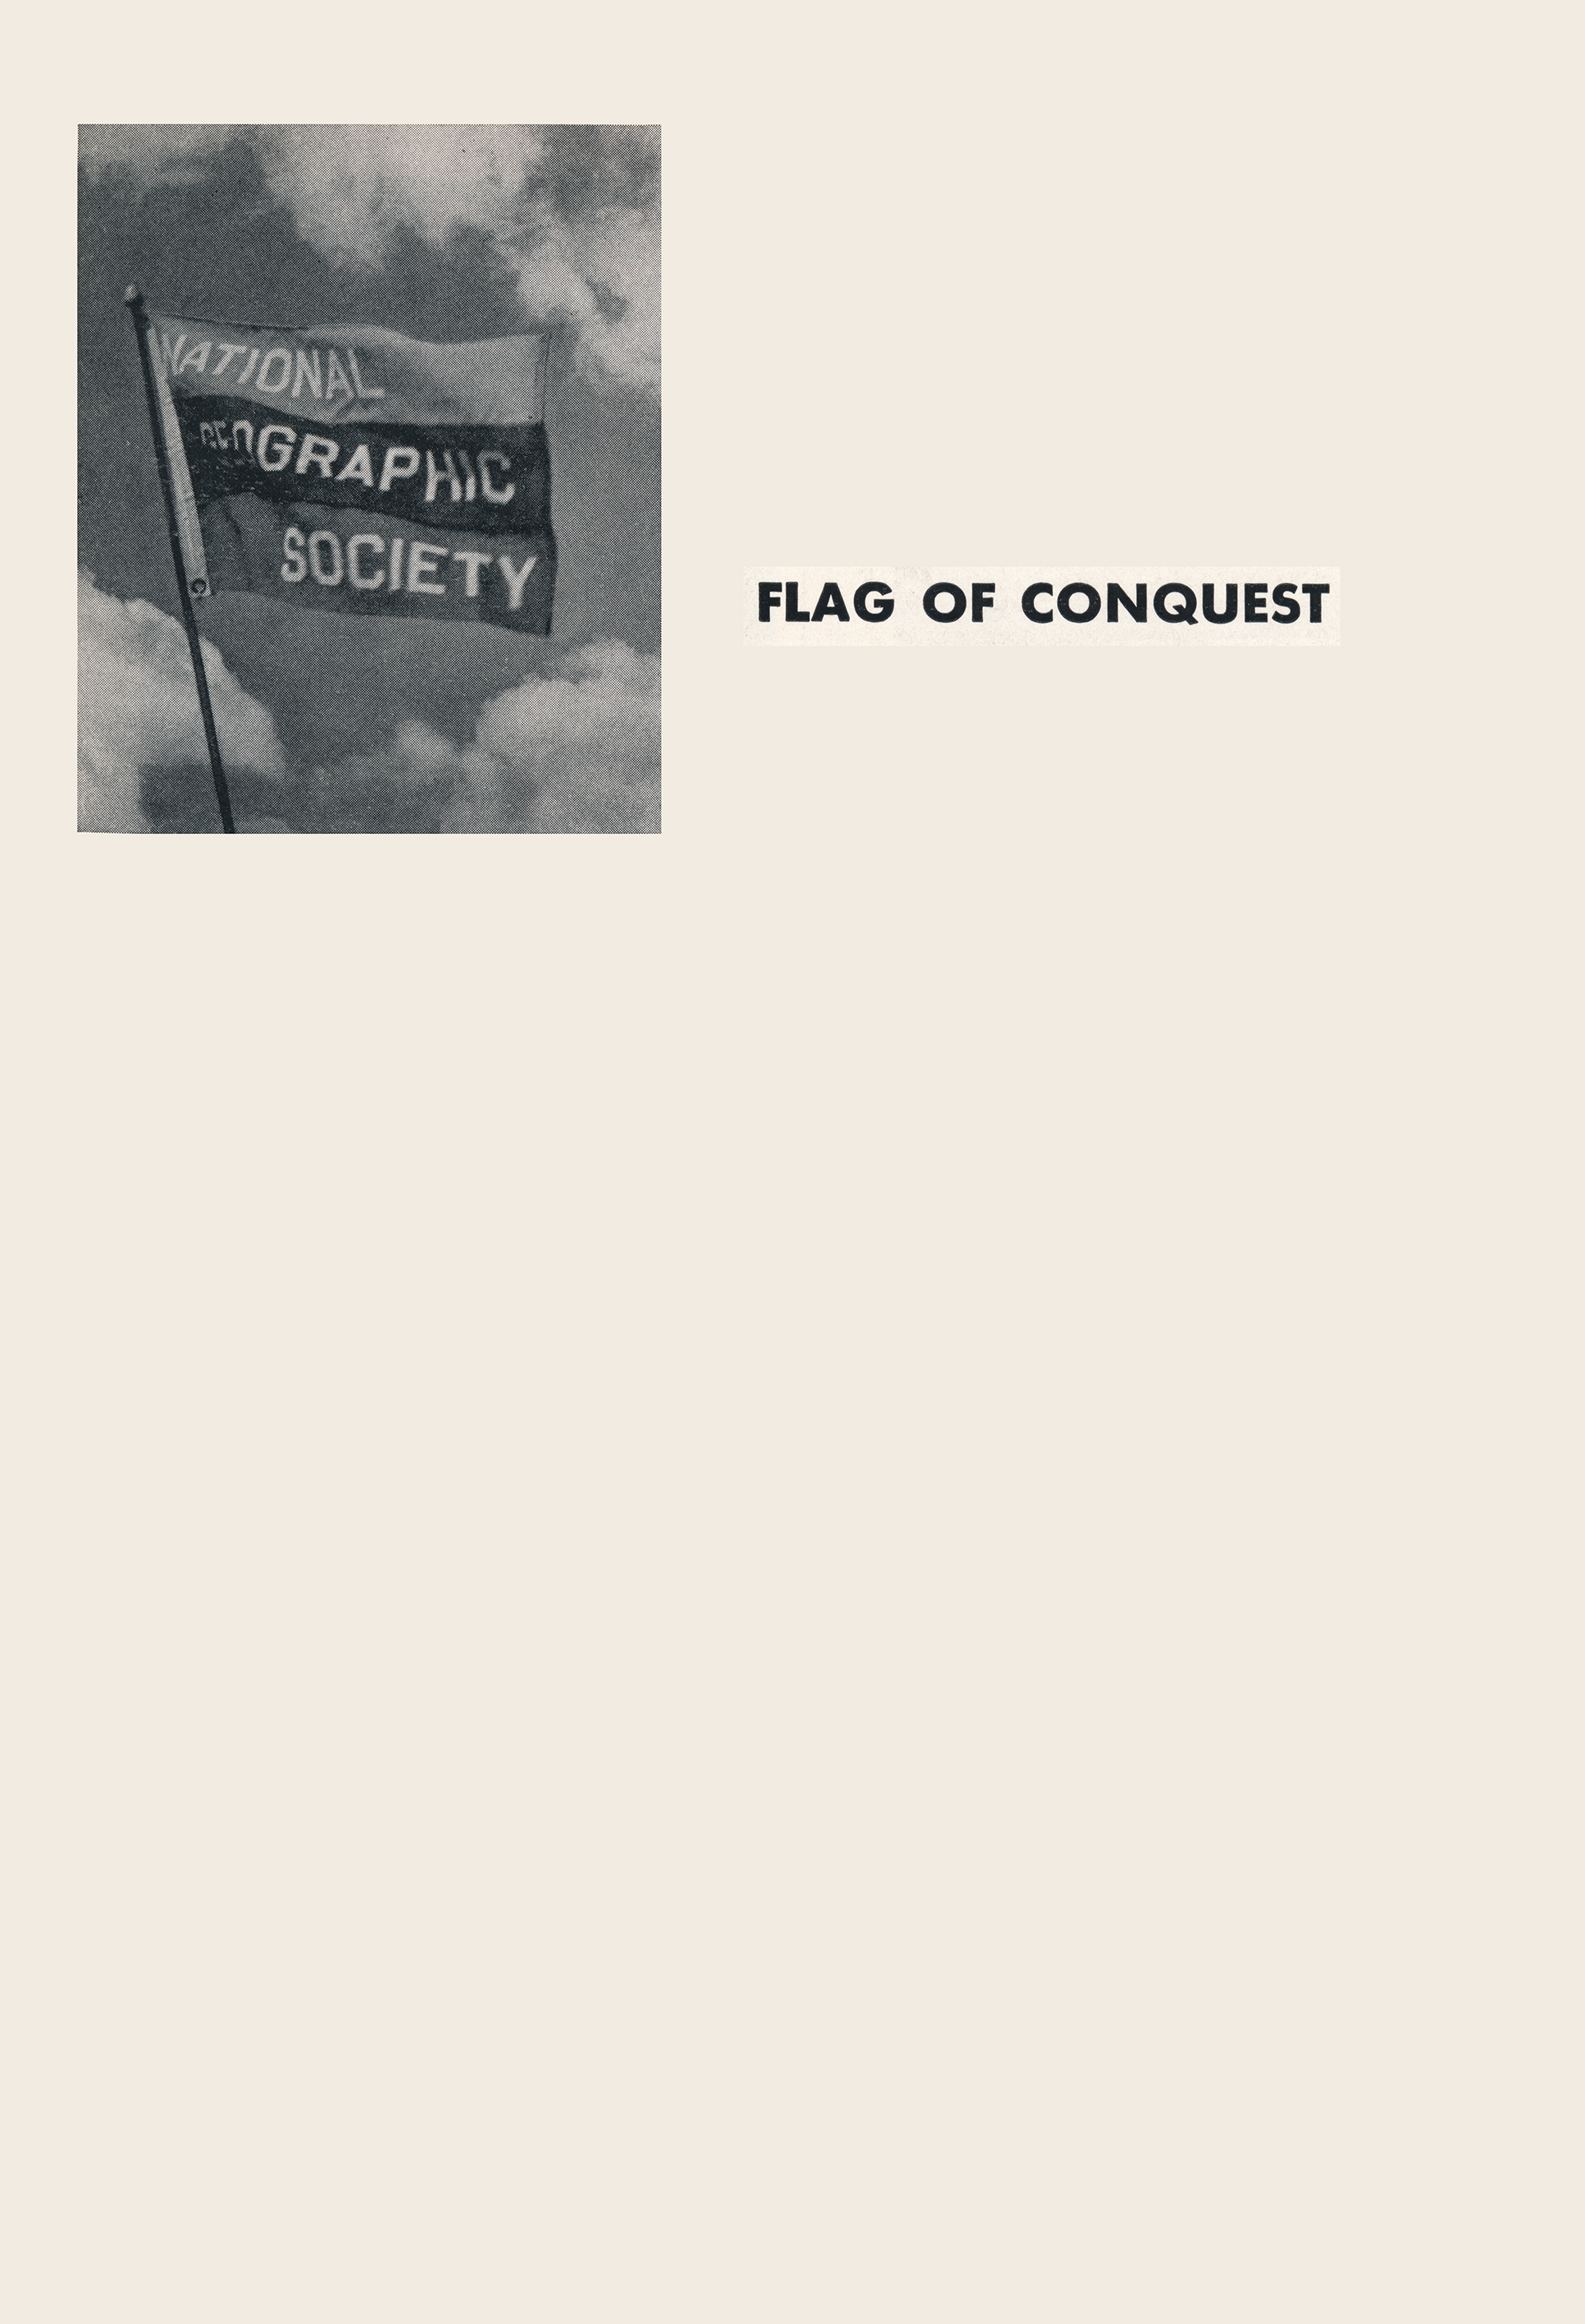 mdizon_flag_of_conquest.jpg